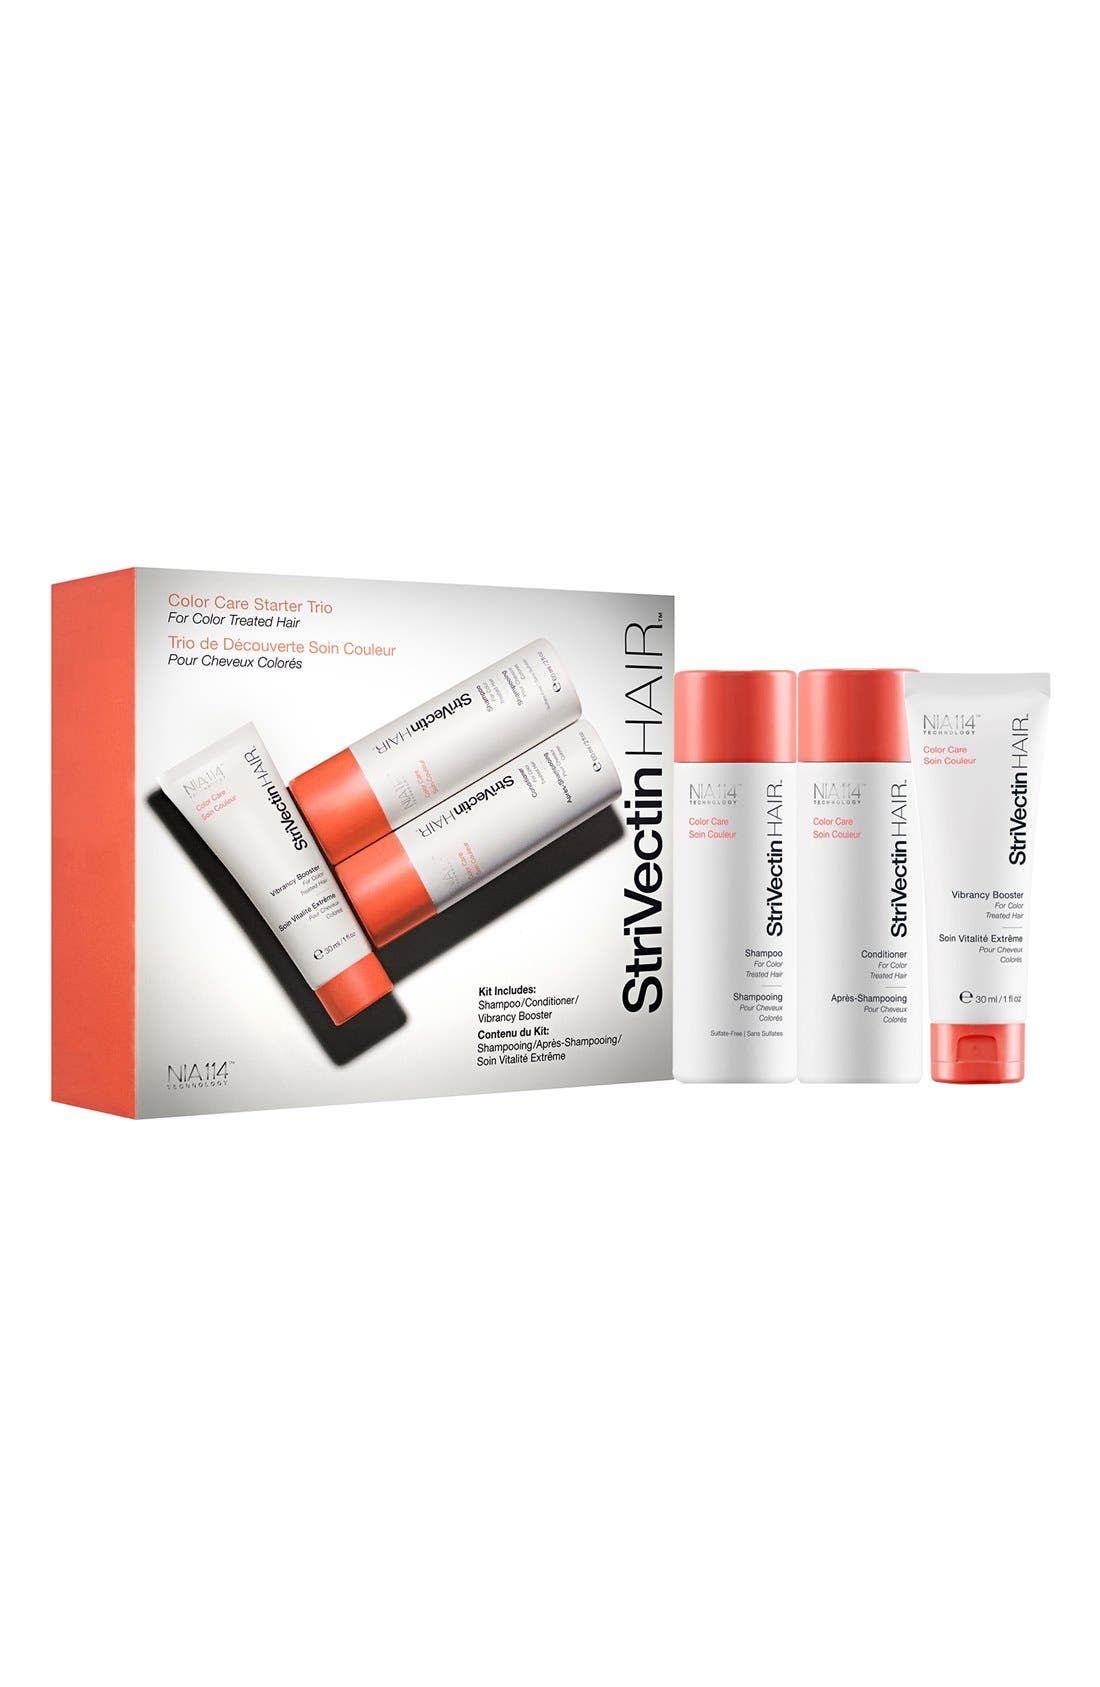 StriVectinHAIR<sup>™</sup> 'Color Care' Hair Starter Trio,                             Main thumbnail 1, color,                             000